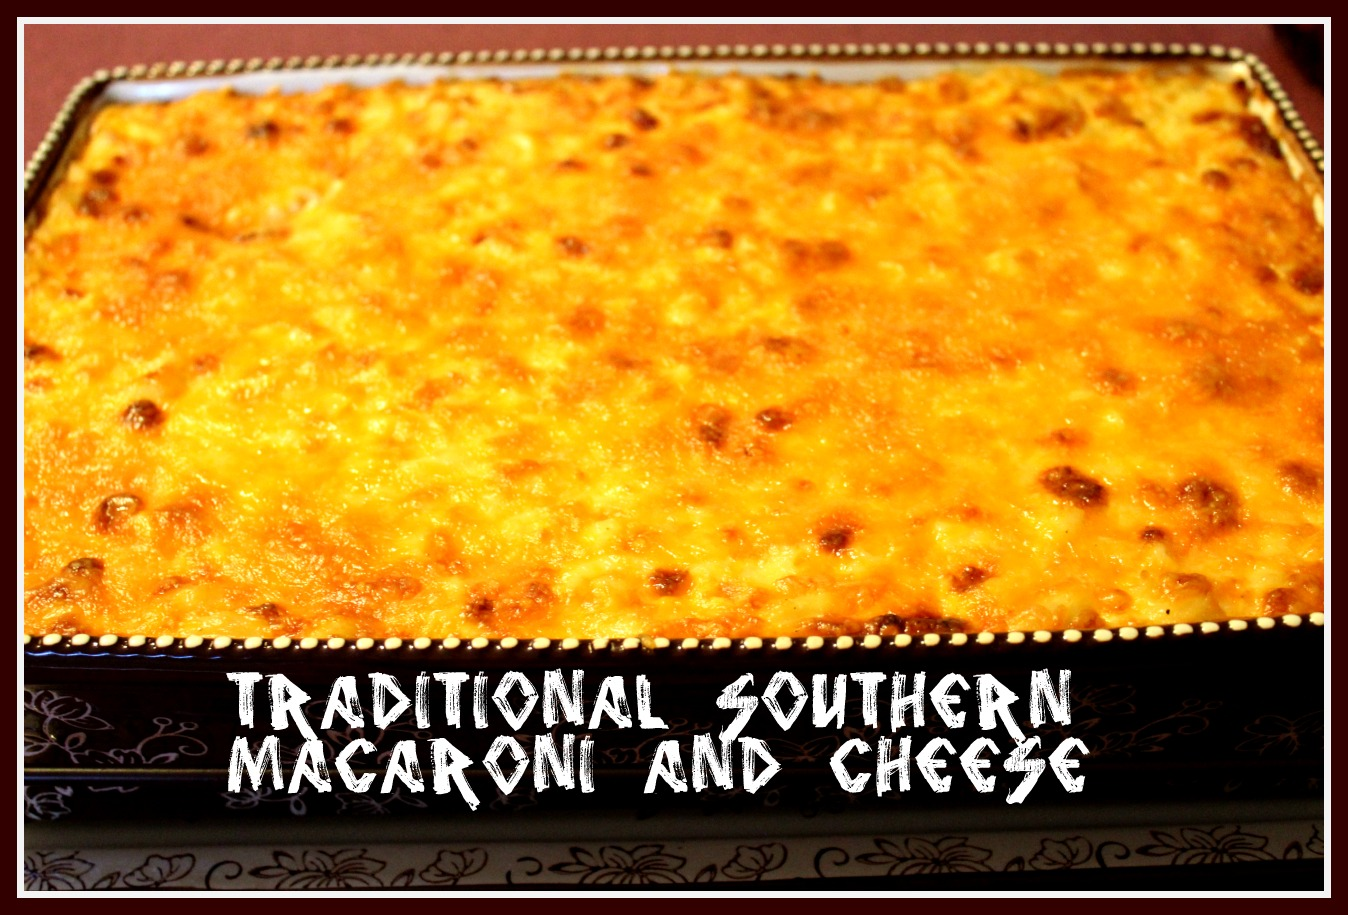 ... of the addition of the eggs. That is southern macaroni and cheese